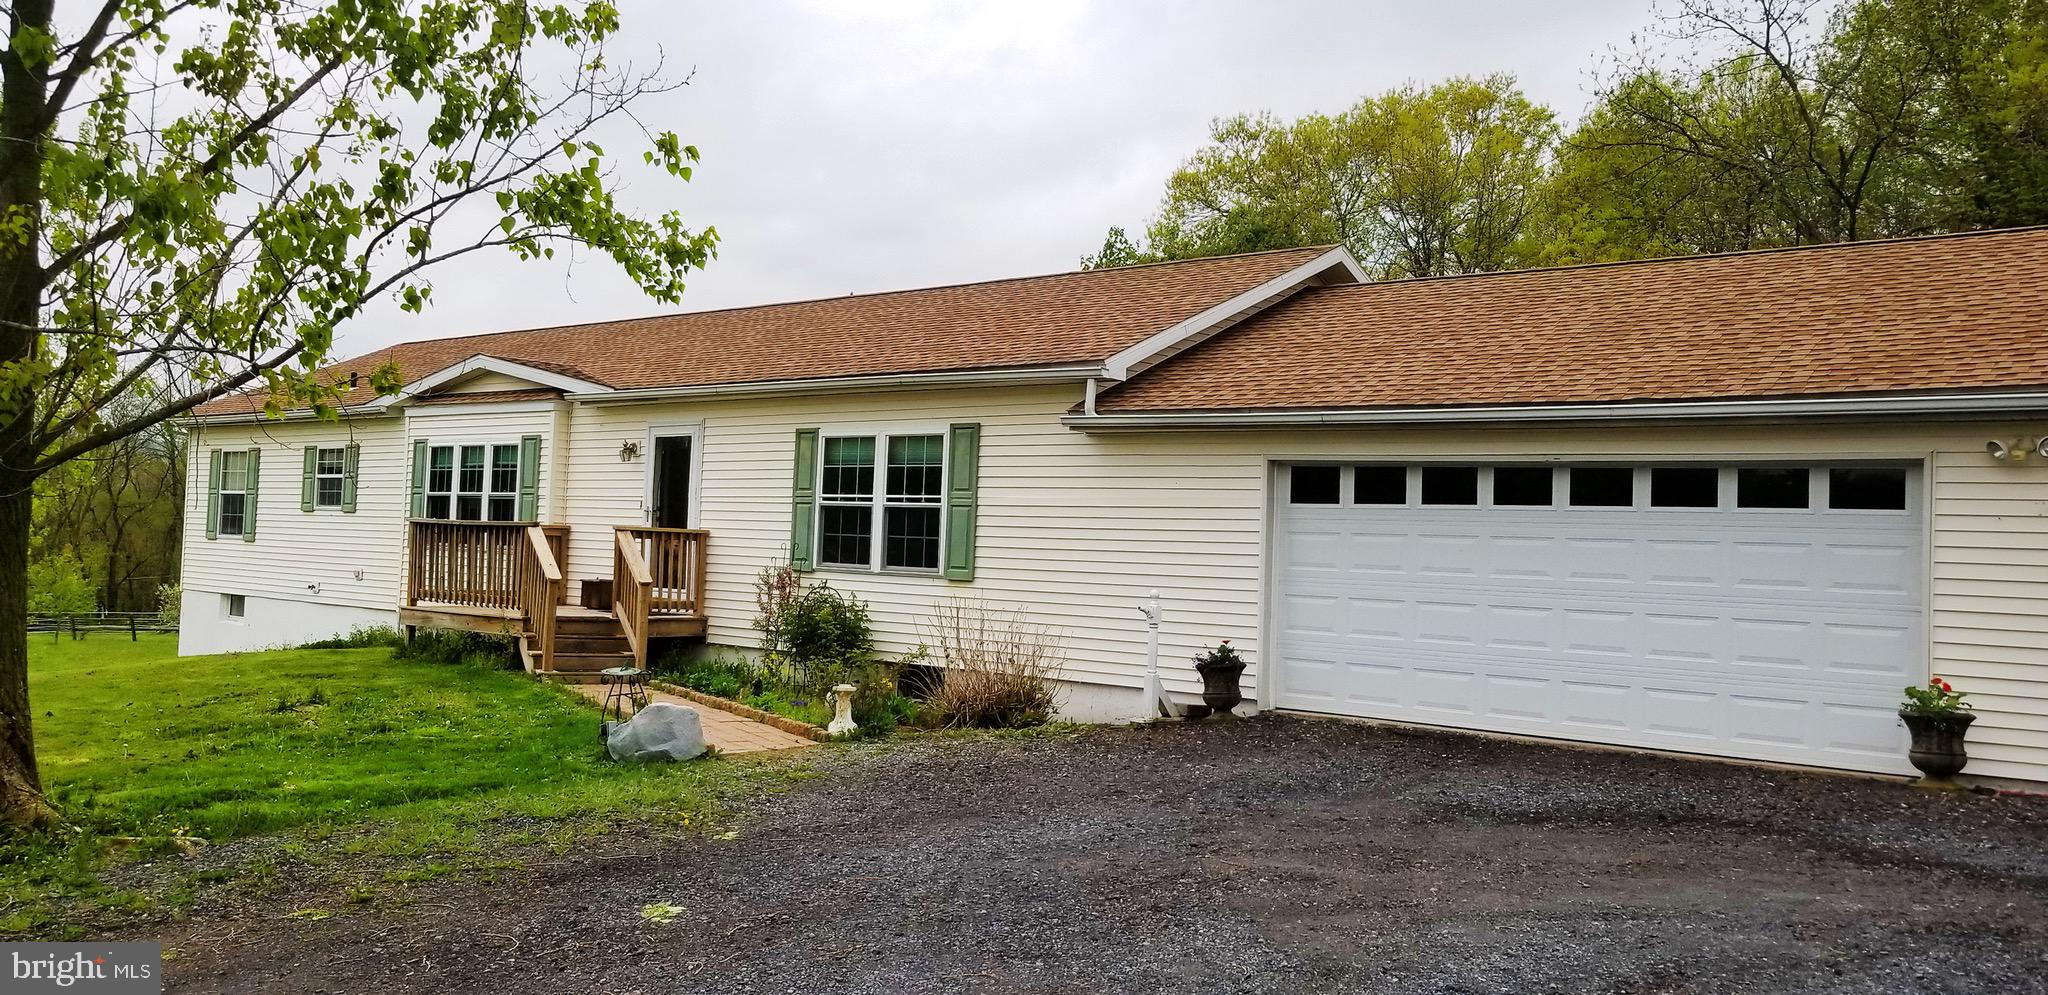 214 FOX ROAD, SCHUYLKILL HAVEN, PA 17972